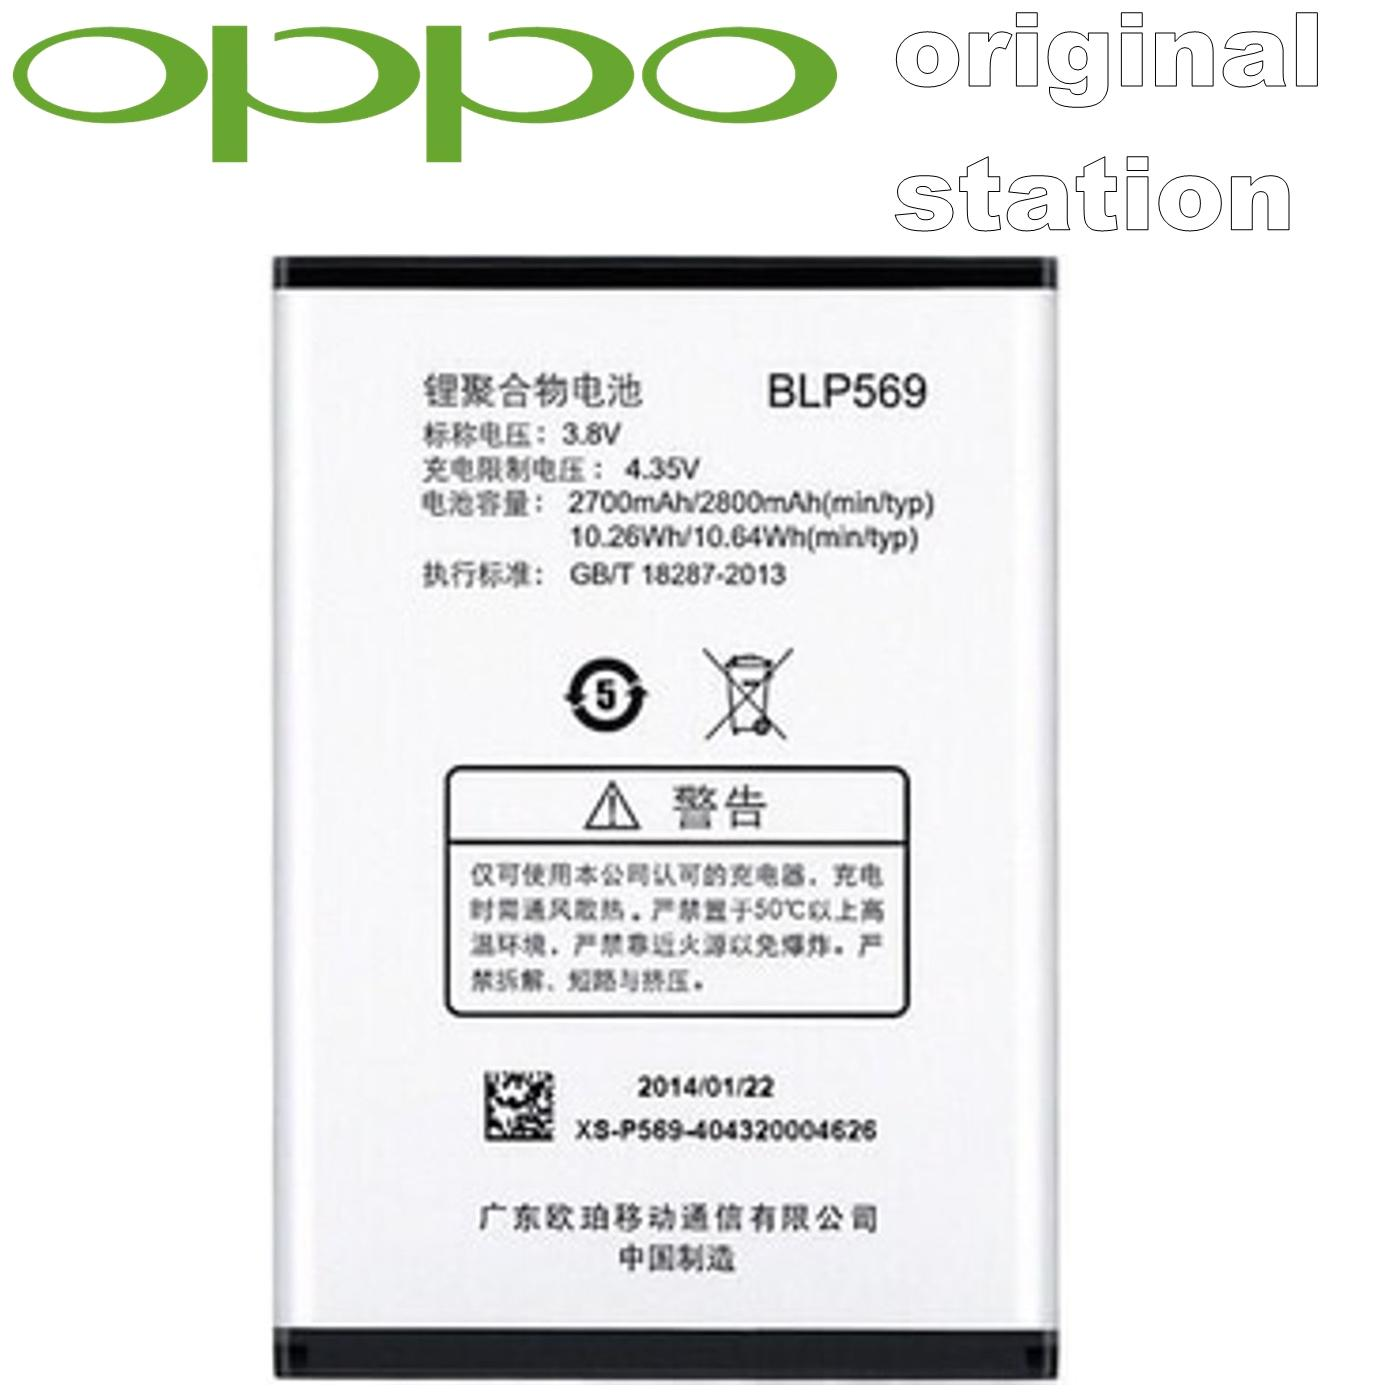 Oppo Baterai / Battery BLP 569 Berkapasitas 2700 For Find 7 / X9007